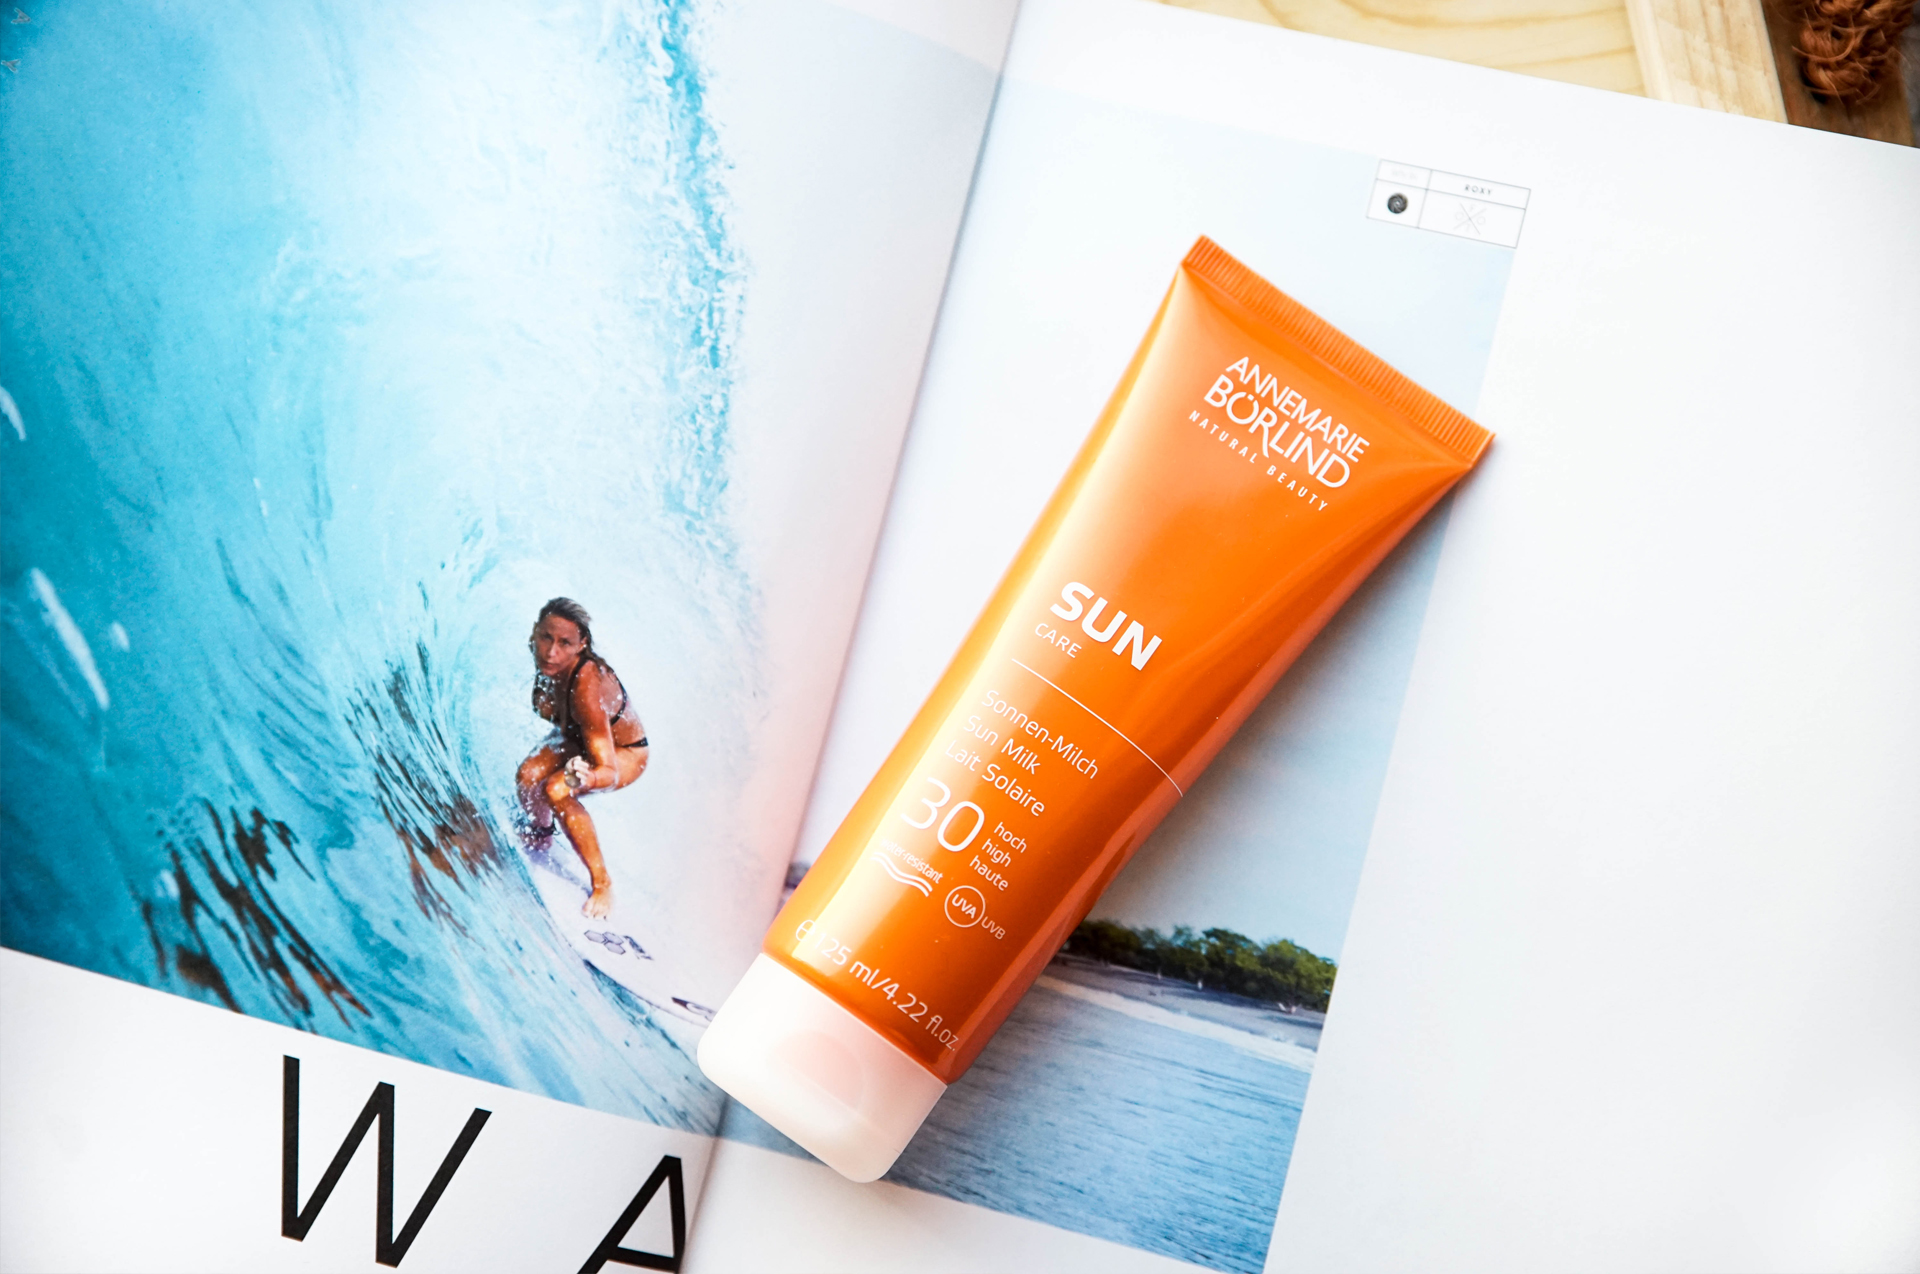 Annemarie Börlind Sun Care Sonnencreme